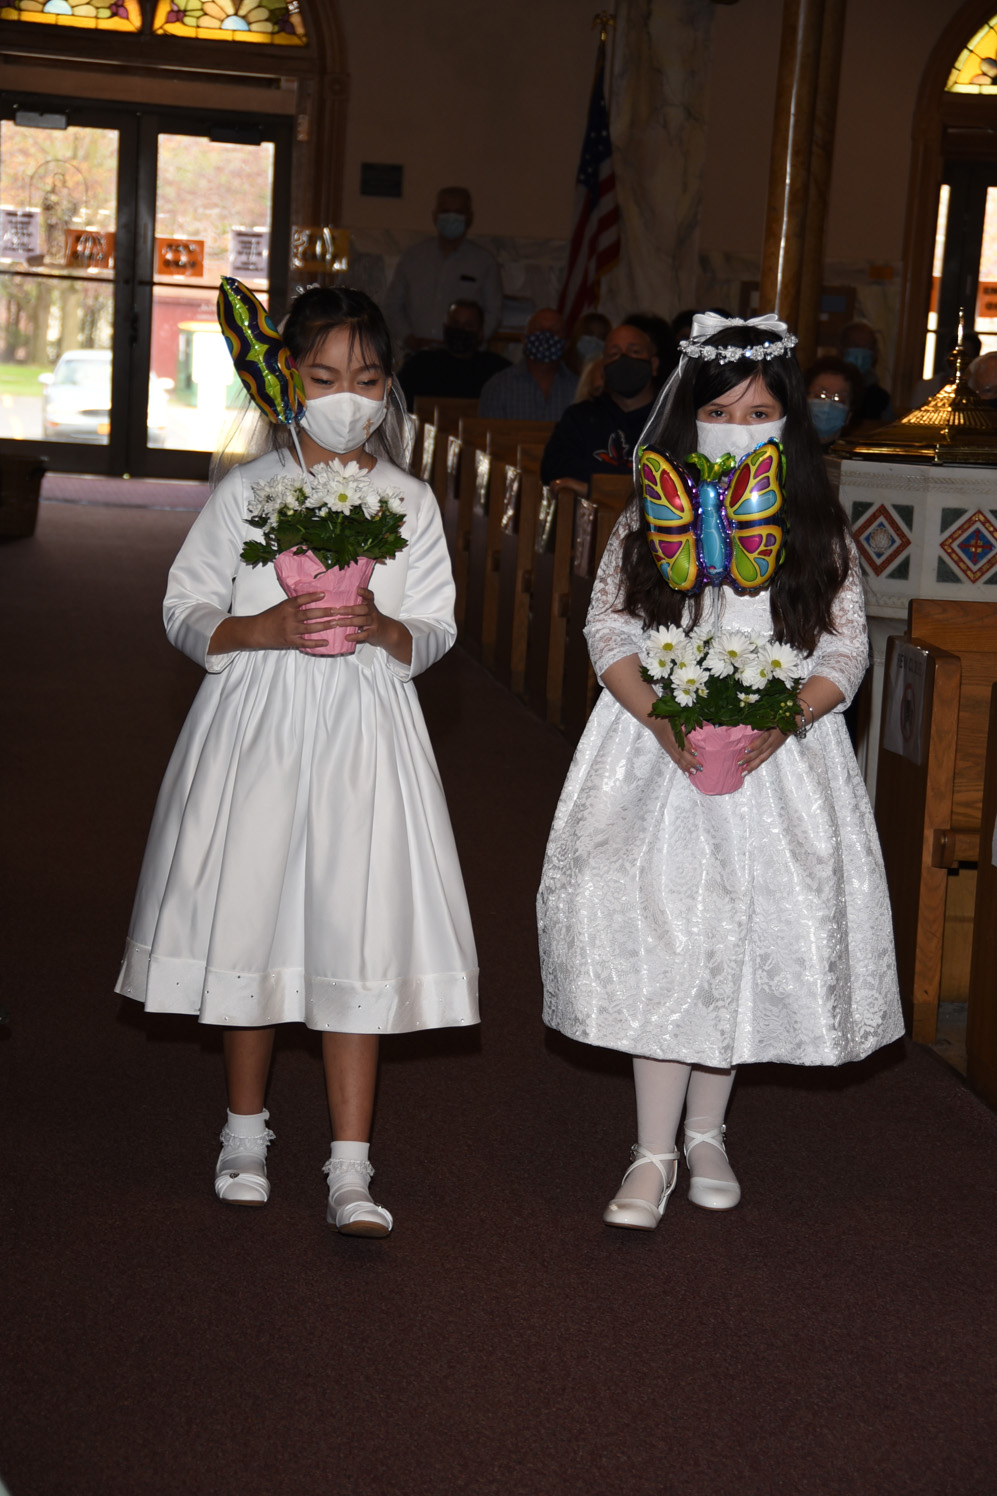 FIRST-COMMUNION-MAY-2-2021-1001001079